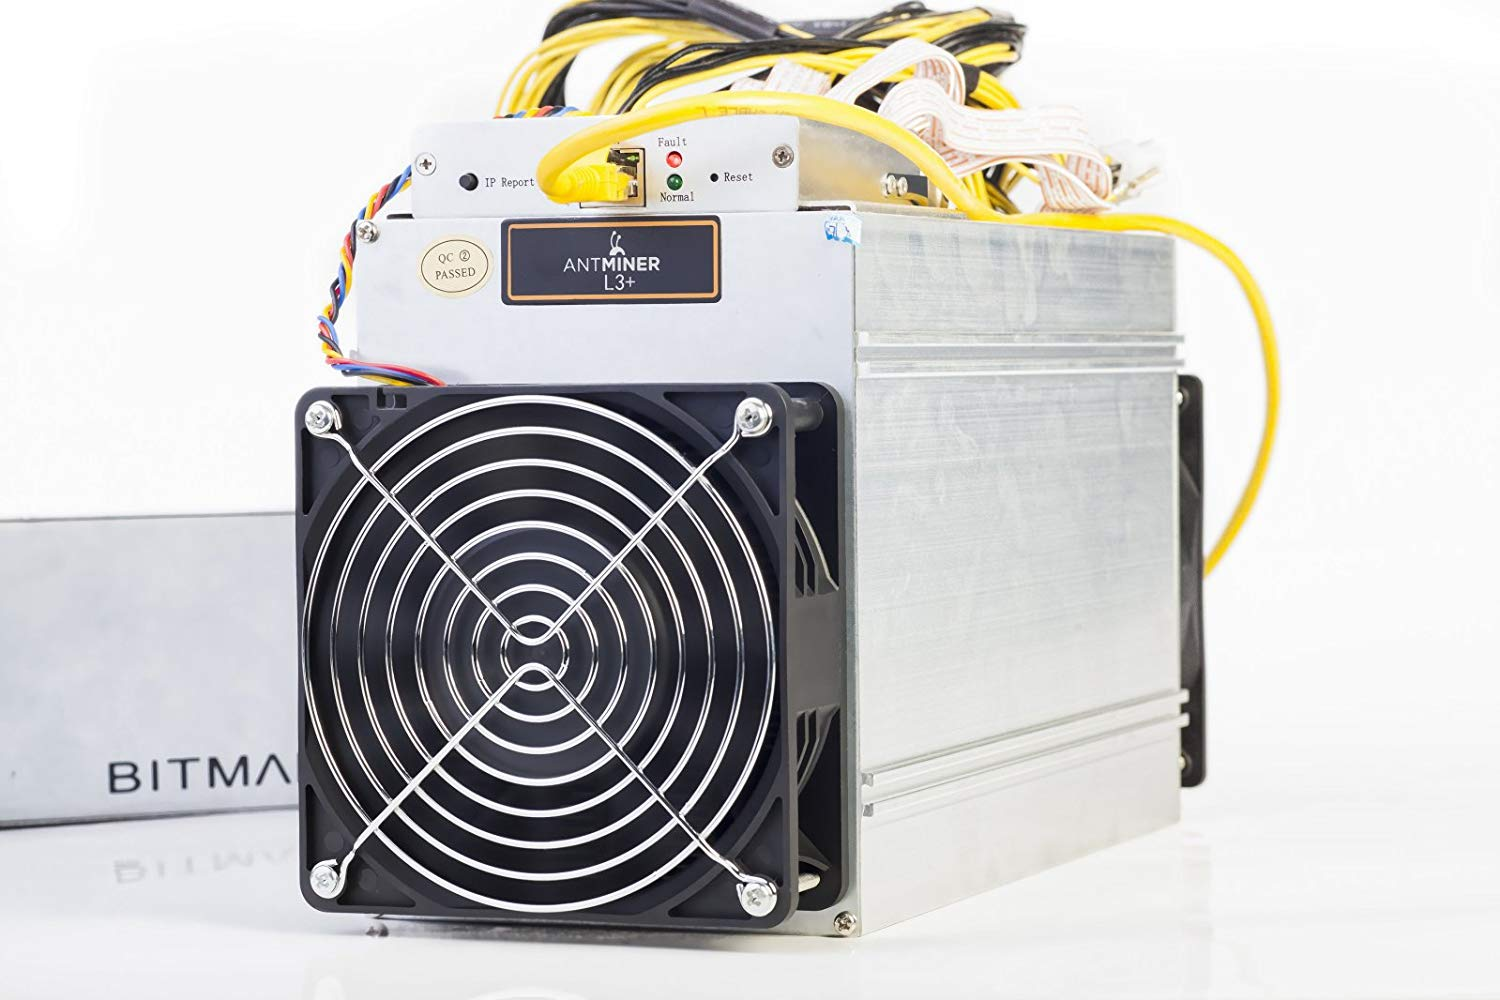 Mining Hardware Protection Plans - Mining Hardware Extended Warranty |Securranty